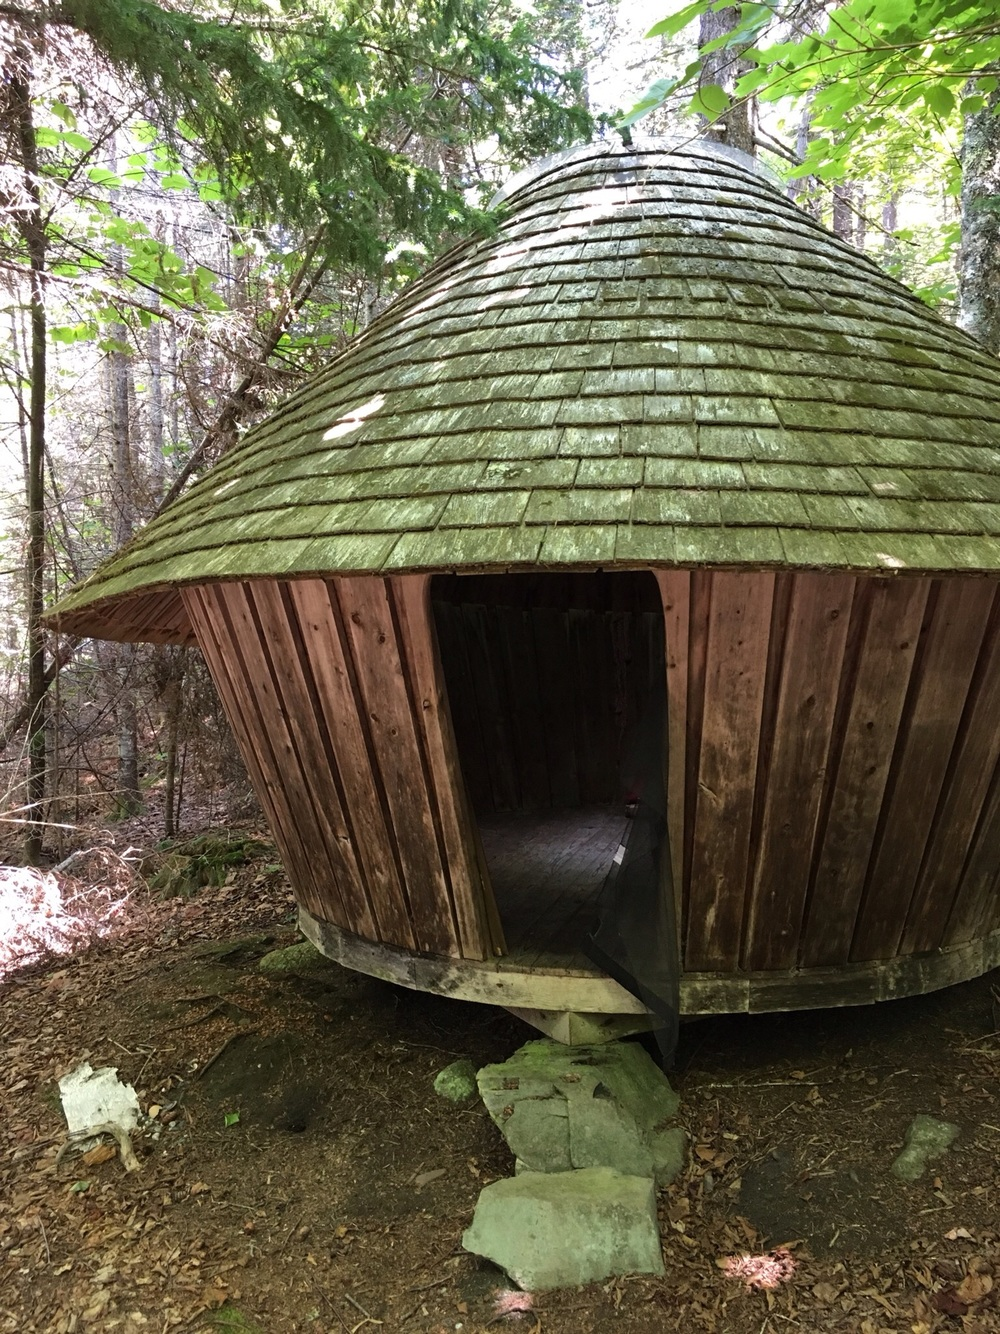 One of the yurts on the grounds of The Good Life Center.